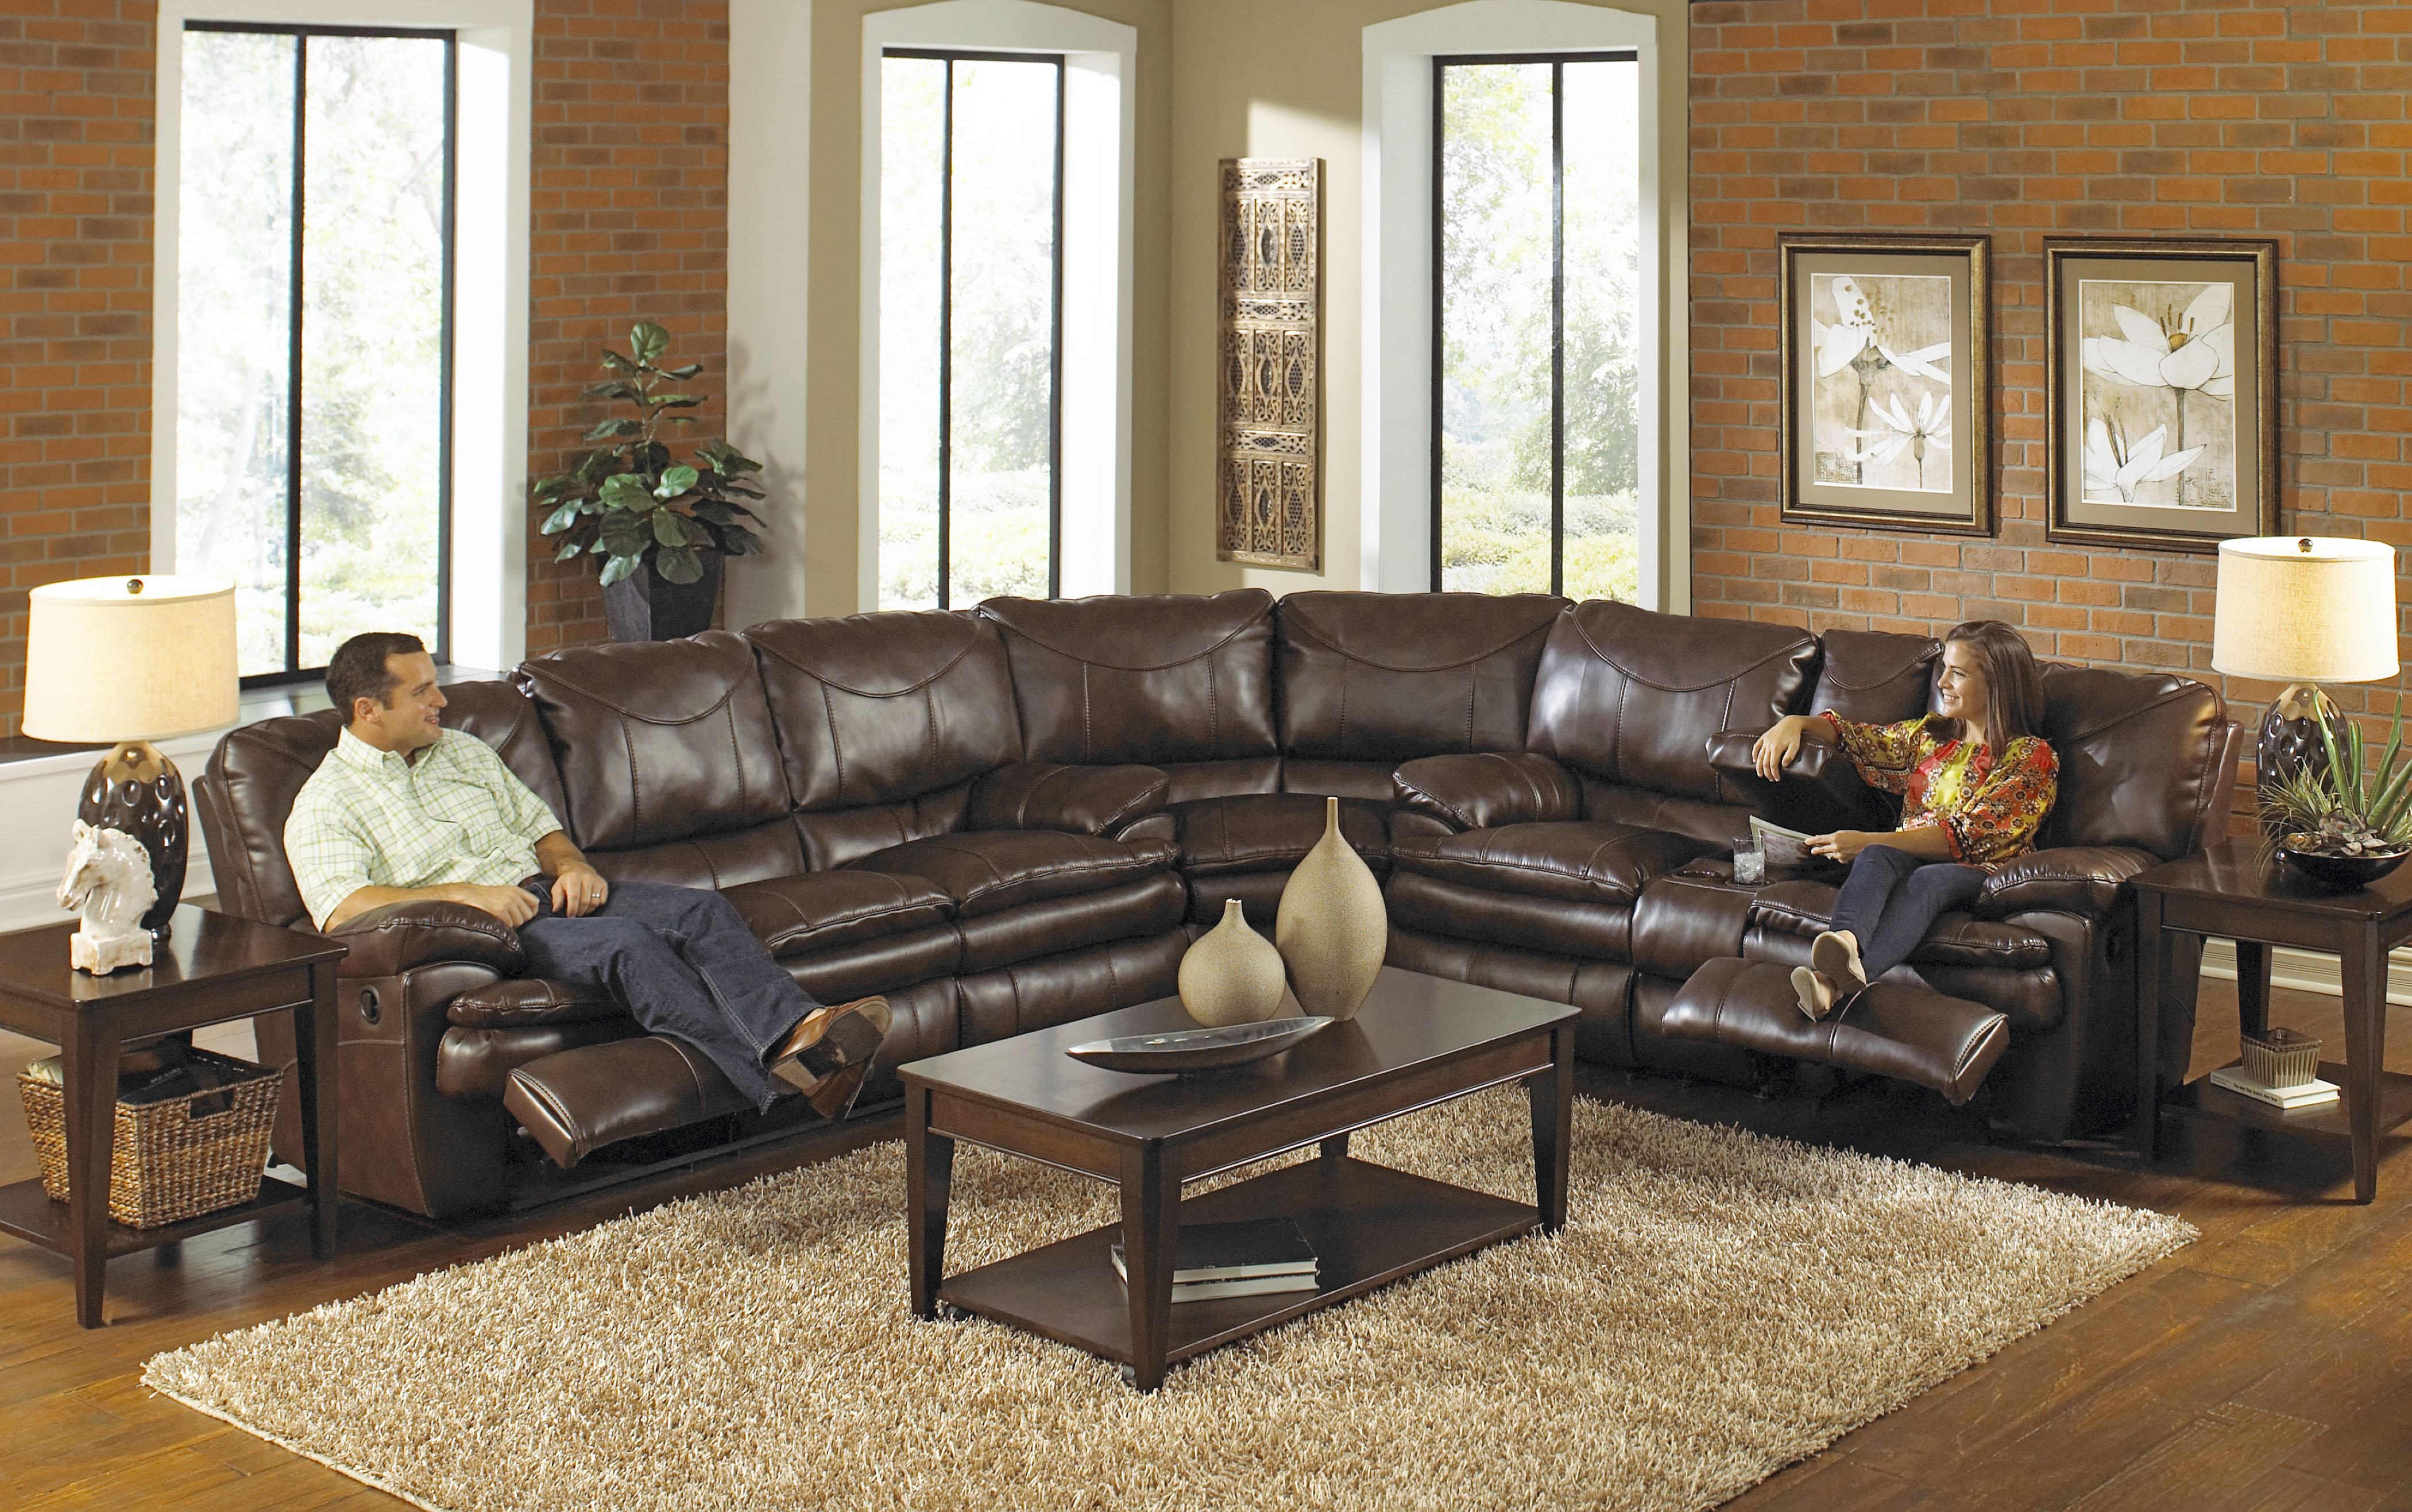 microfiber sectional couch with recliner seating furniture - sectional reclining sofa NBDQOLI